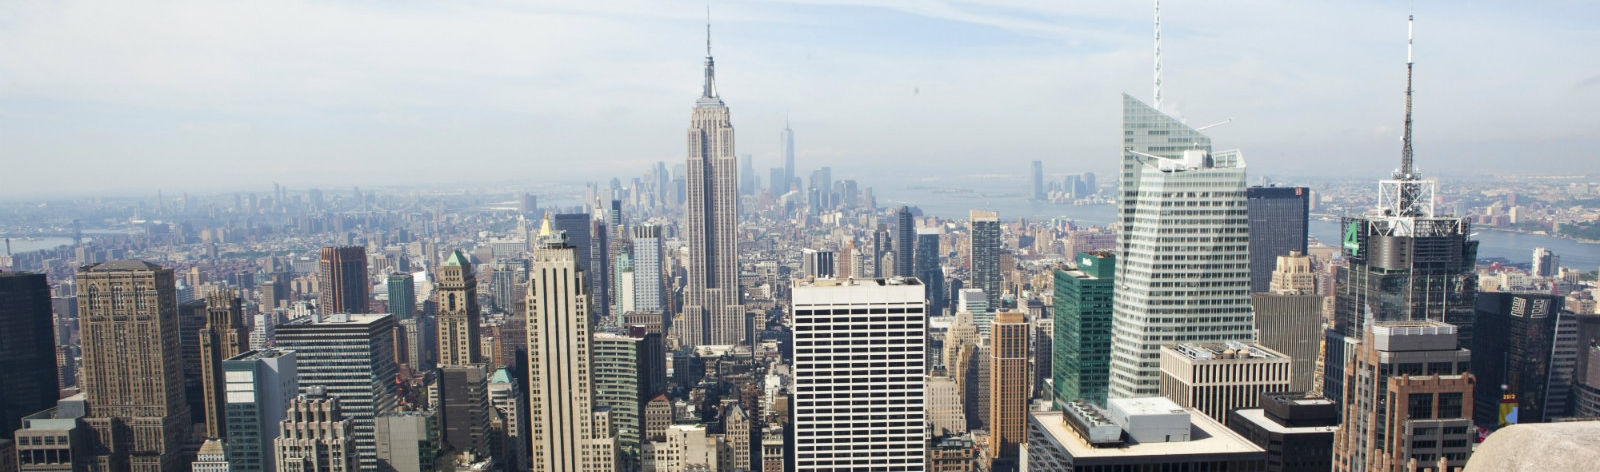 Hotels Near Empire State Building